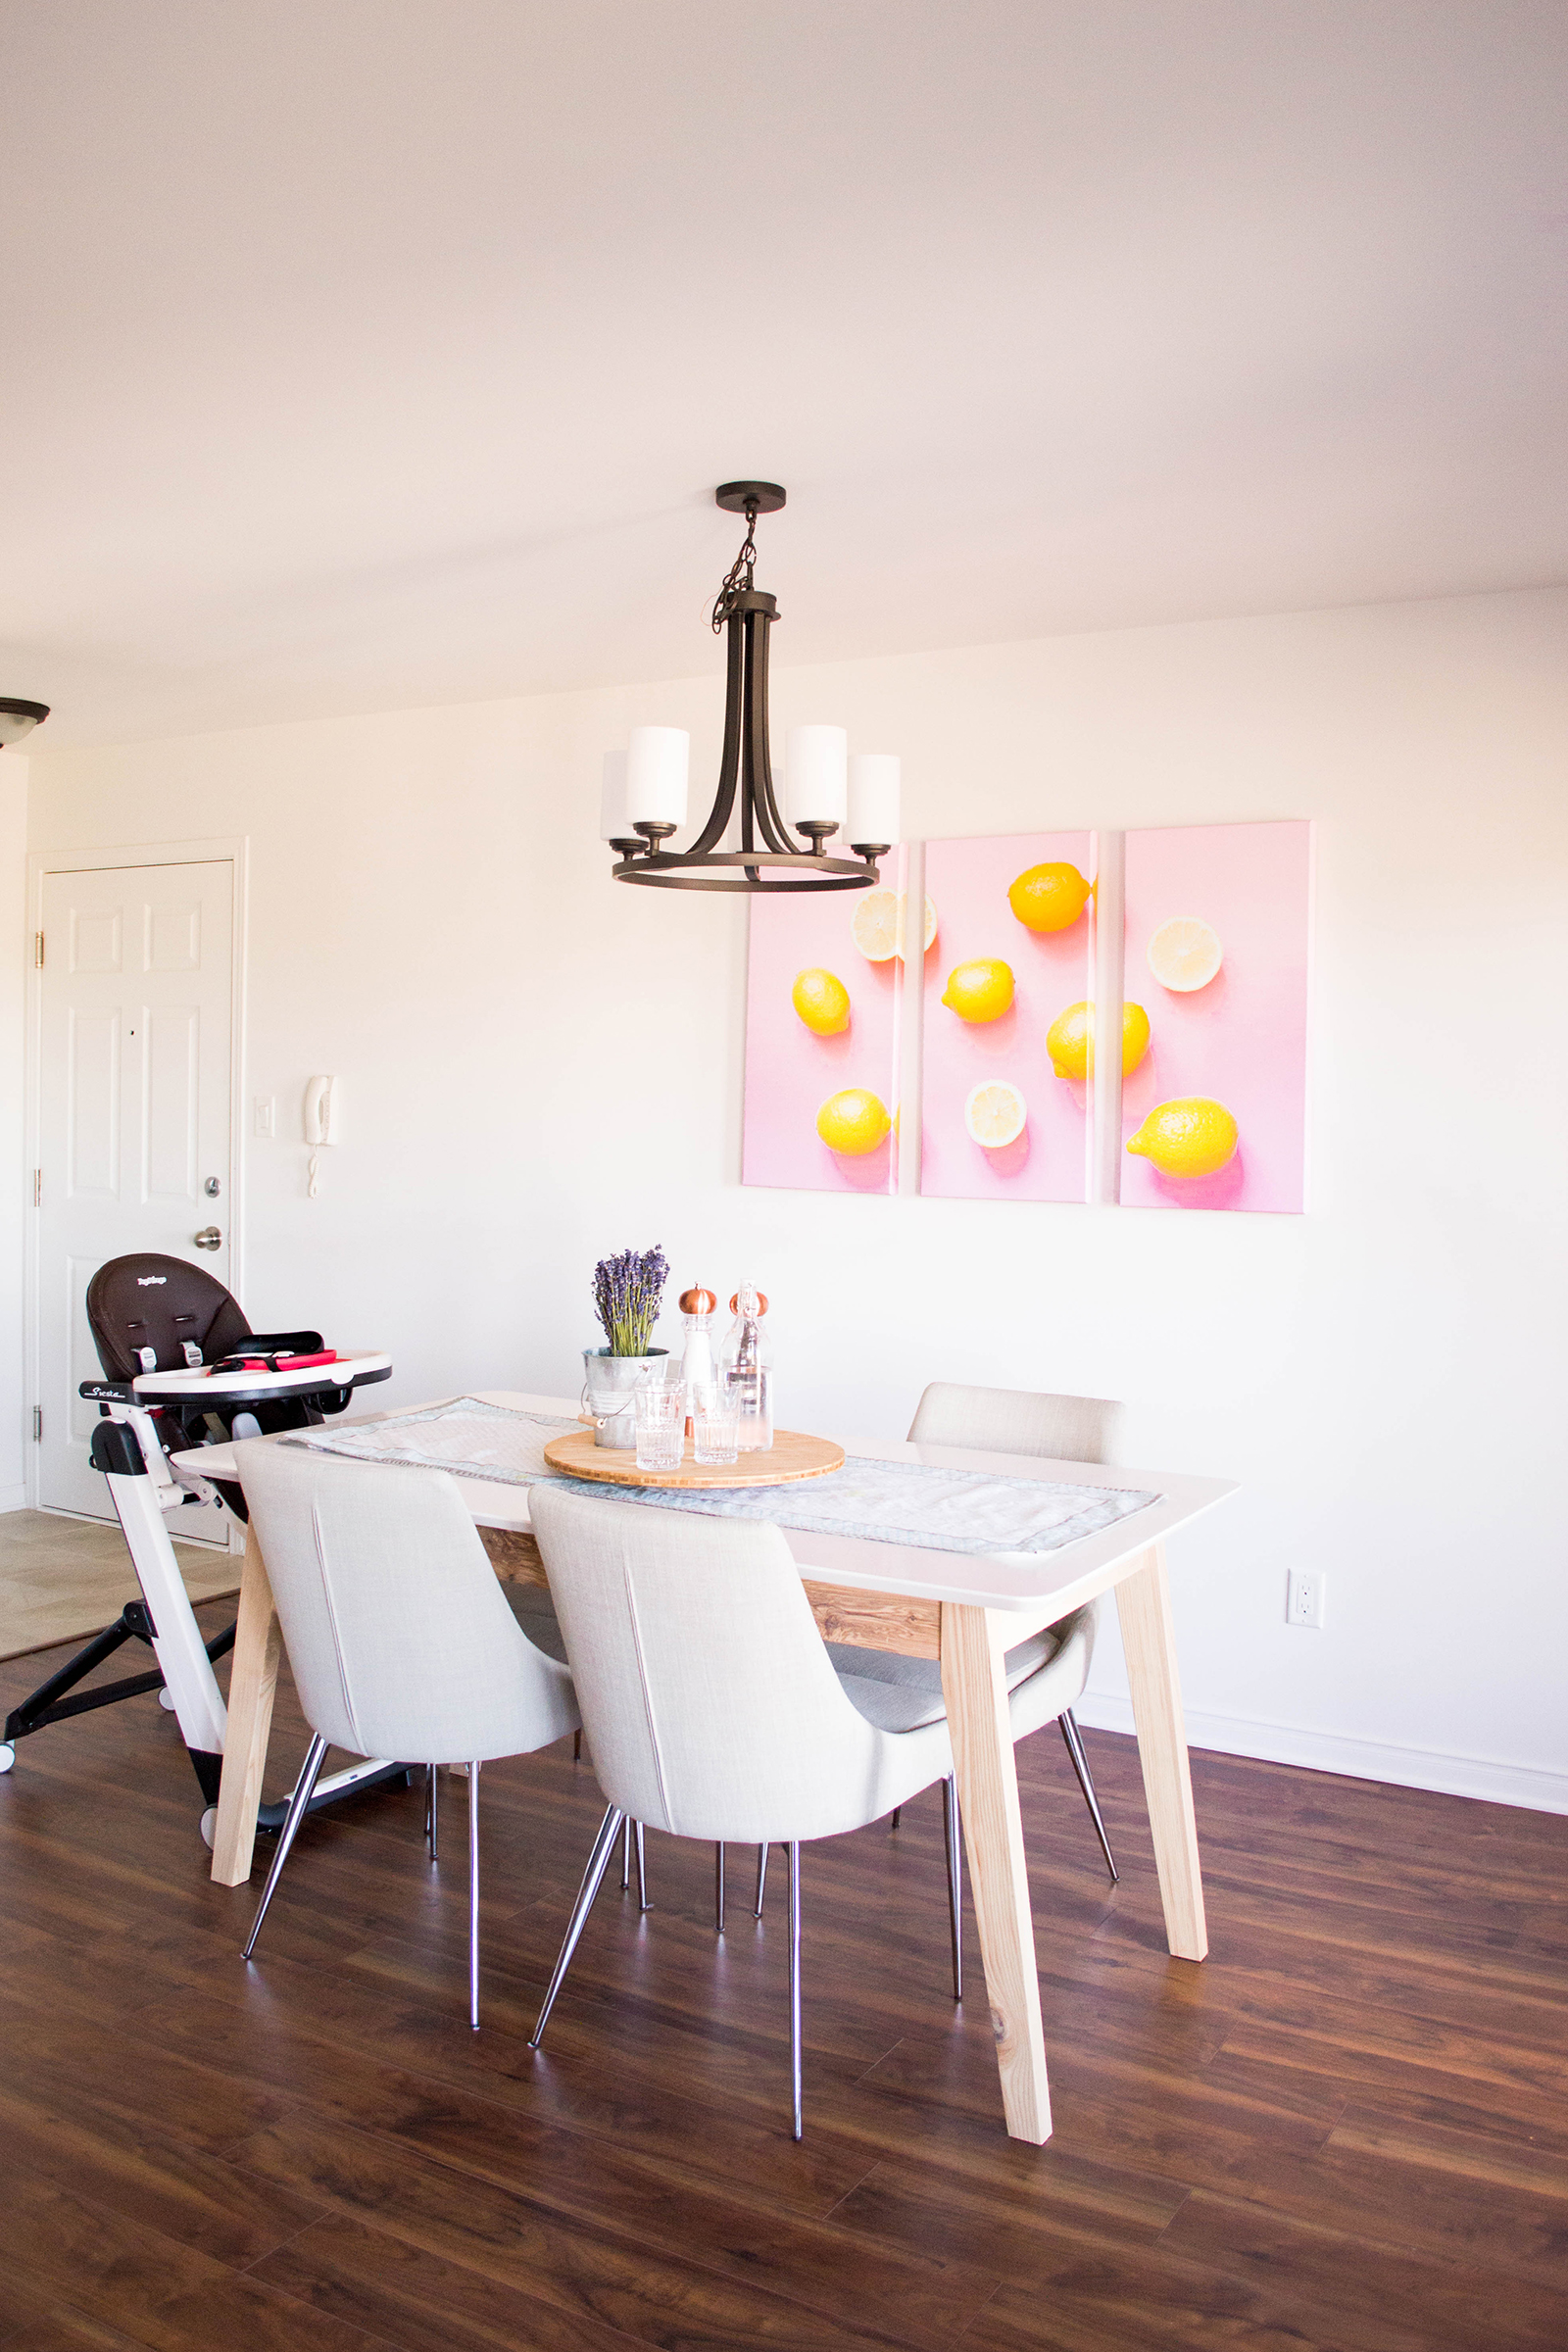 Staying Stylish and Keeping it Kid-Friendly: Our Dining Room Reveal